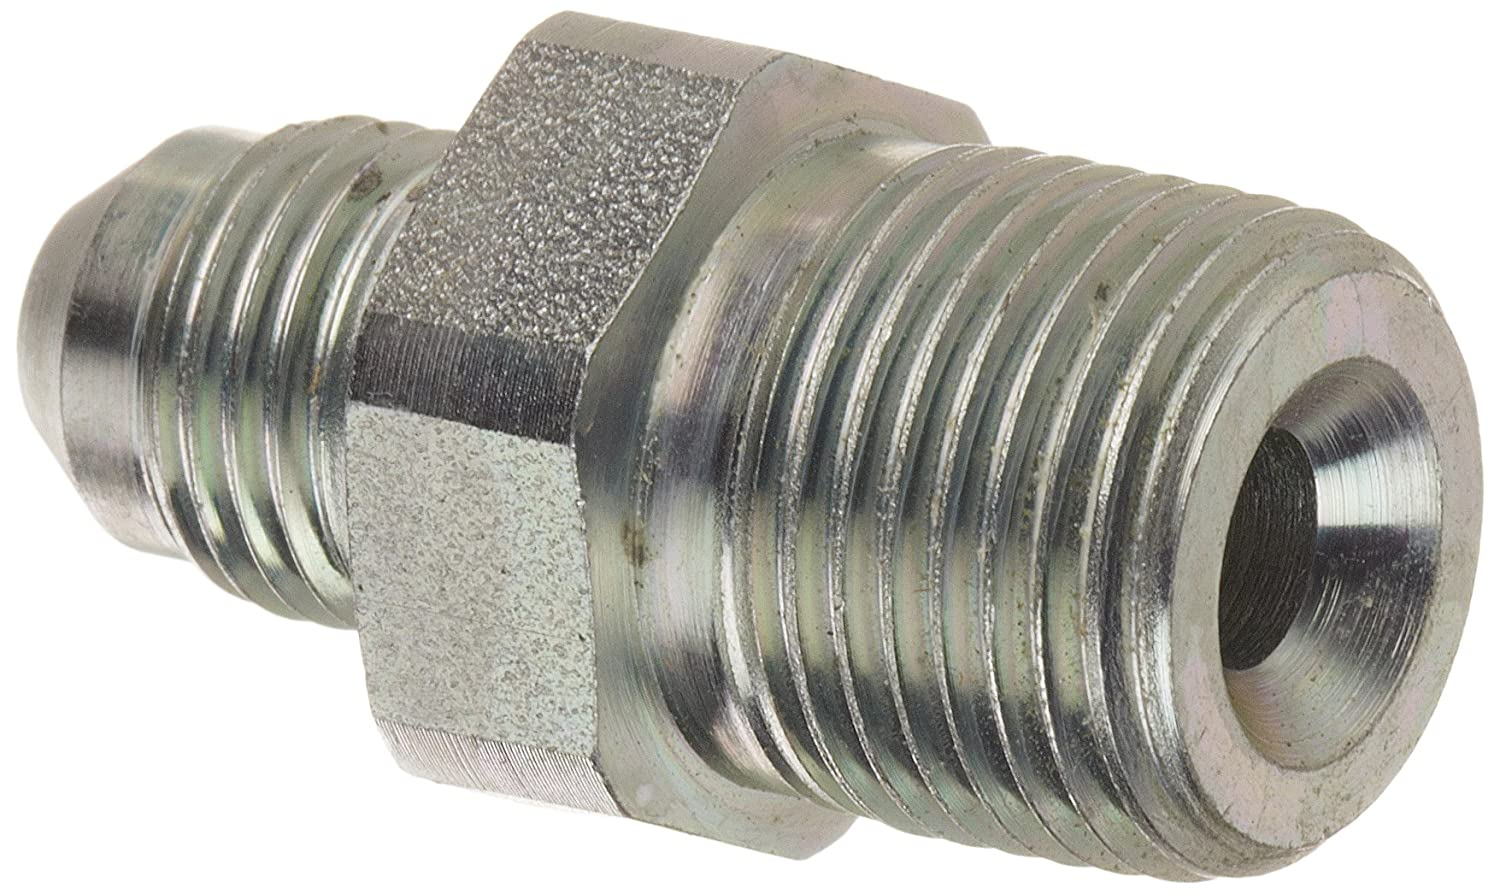 m End Size Carbon Steel 5//16 Tube OD 3//8 NPT x 5//16 JIC Eaton Aeroquip 2021-6-5S Male Connector Male 37 Degree JIC m JIC 37 Degree /& NPT End Types Male Pipe Thread